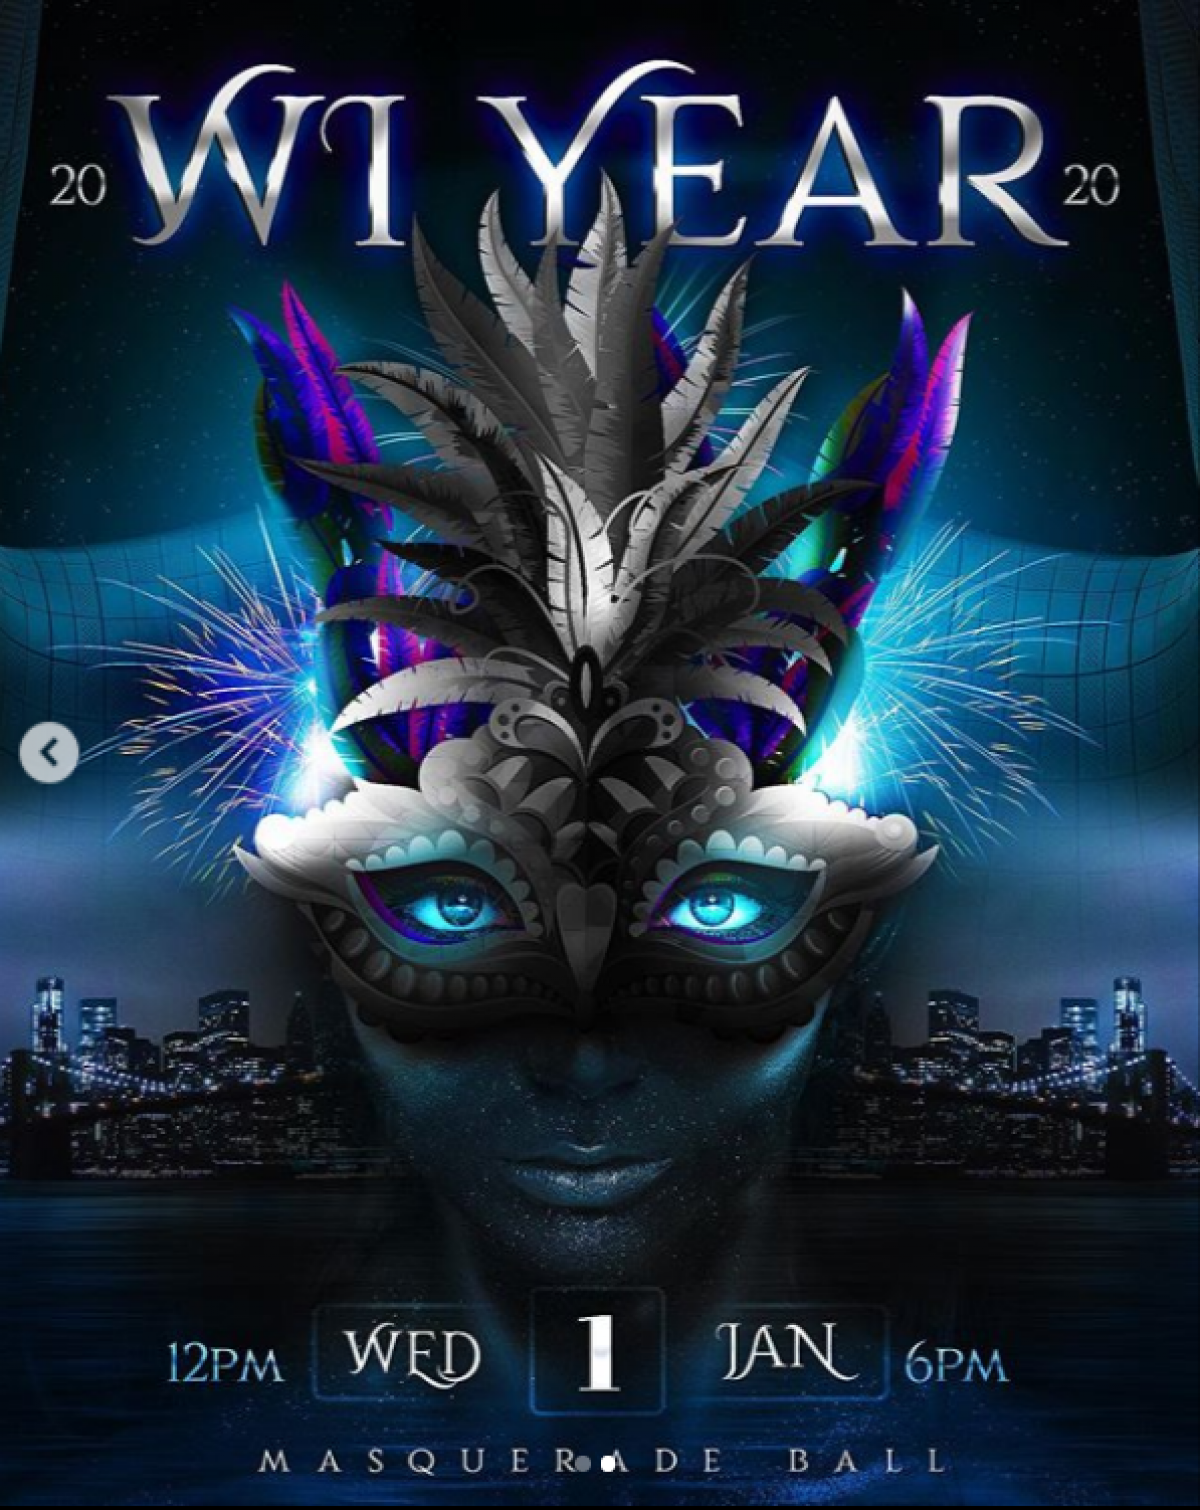 WiYear flyer or graphic.